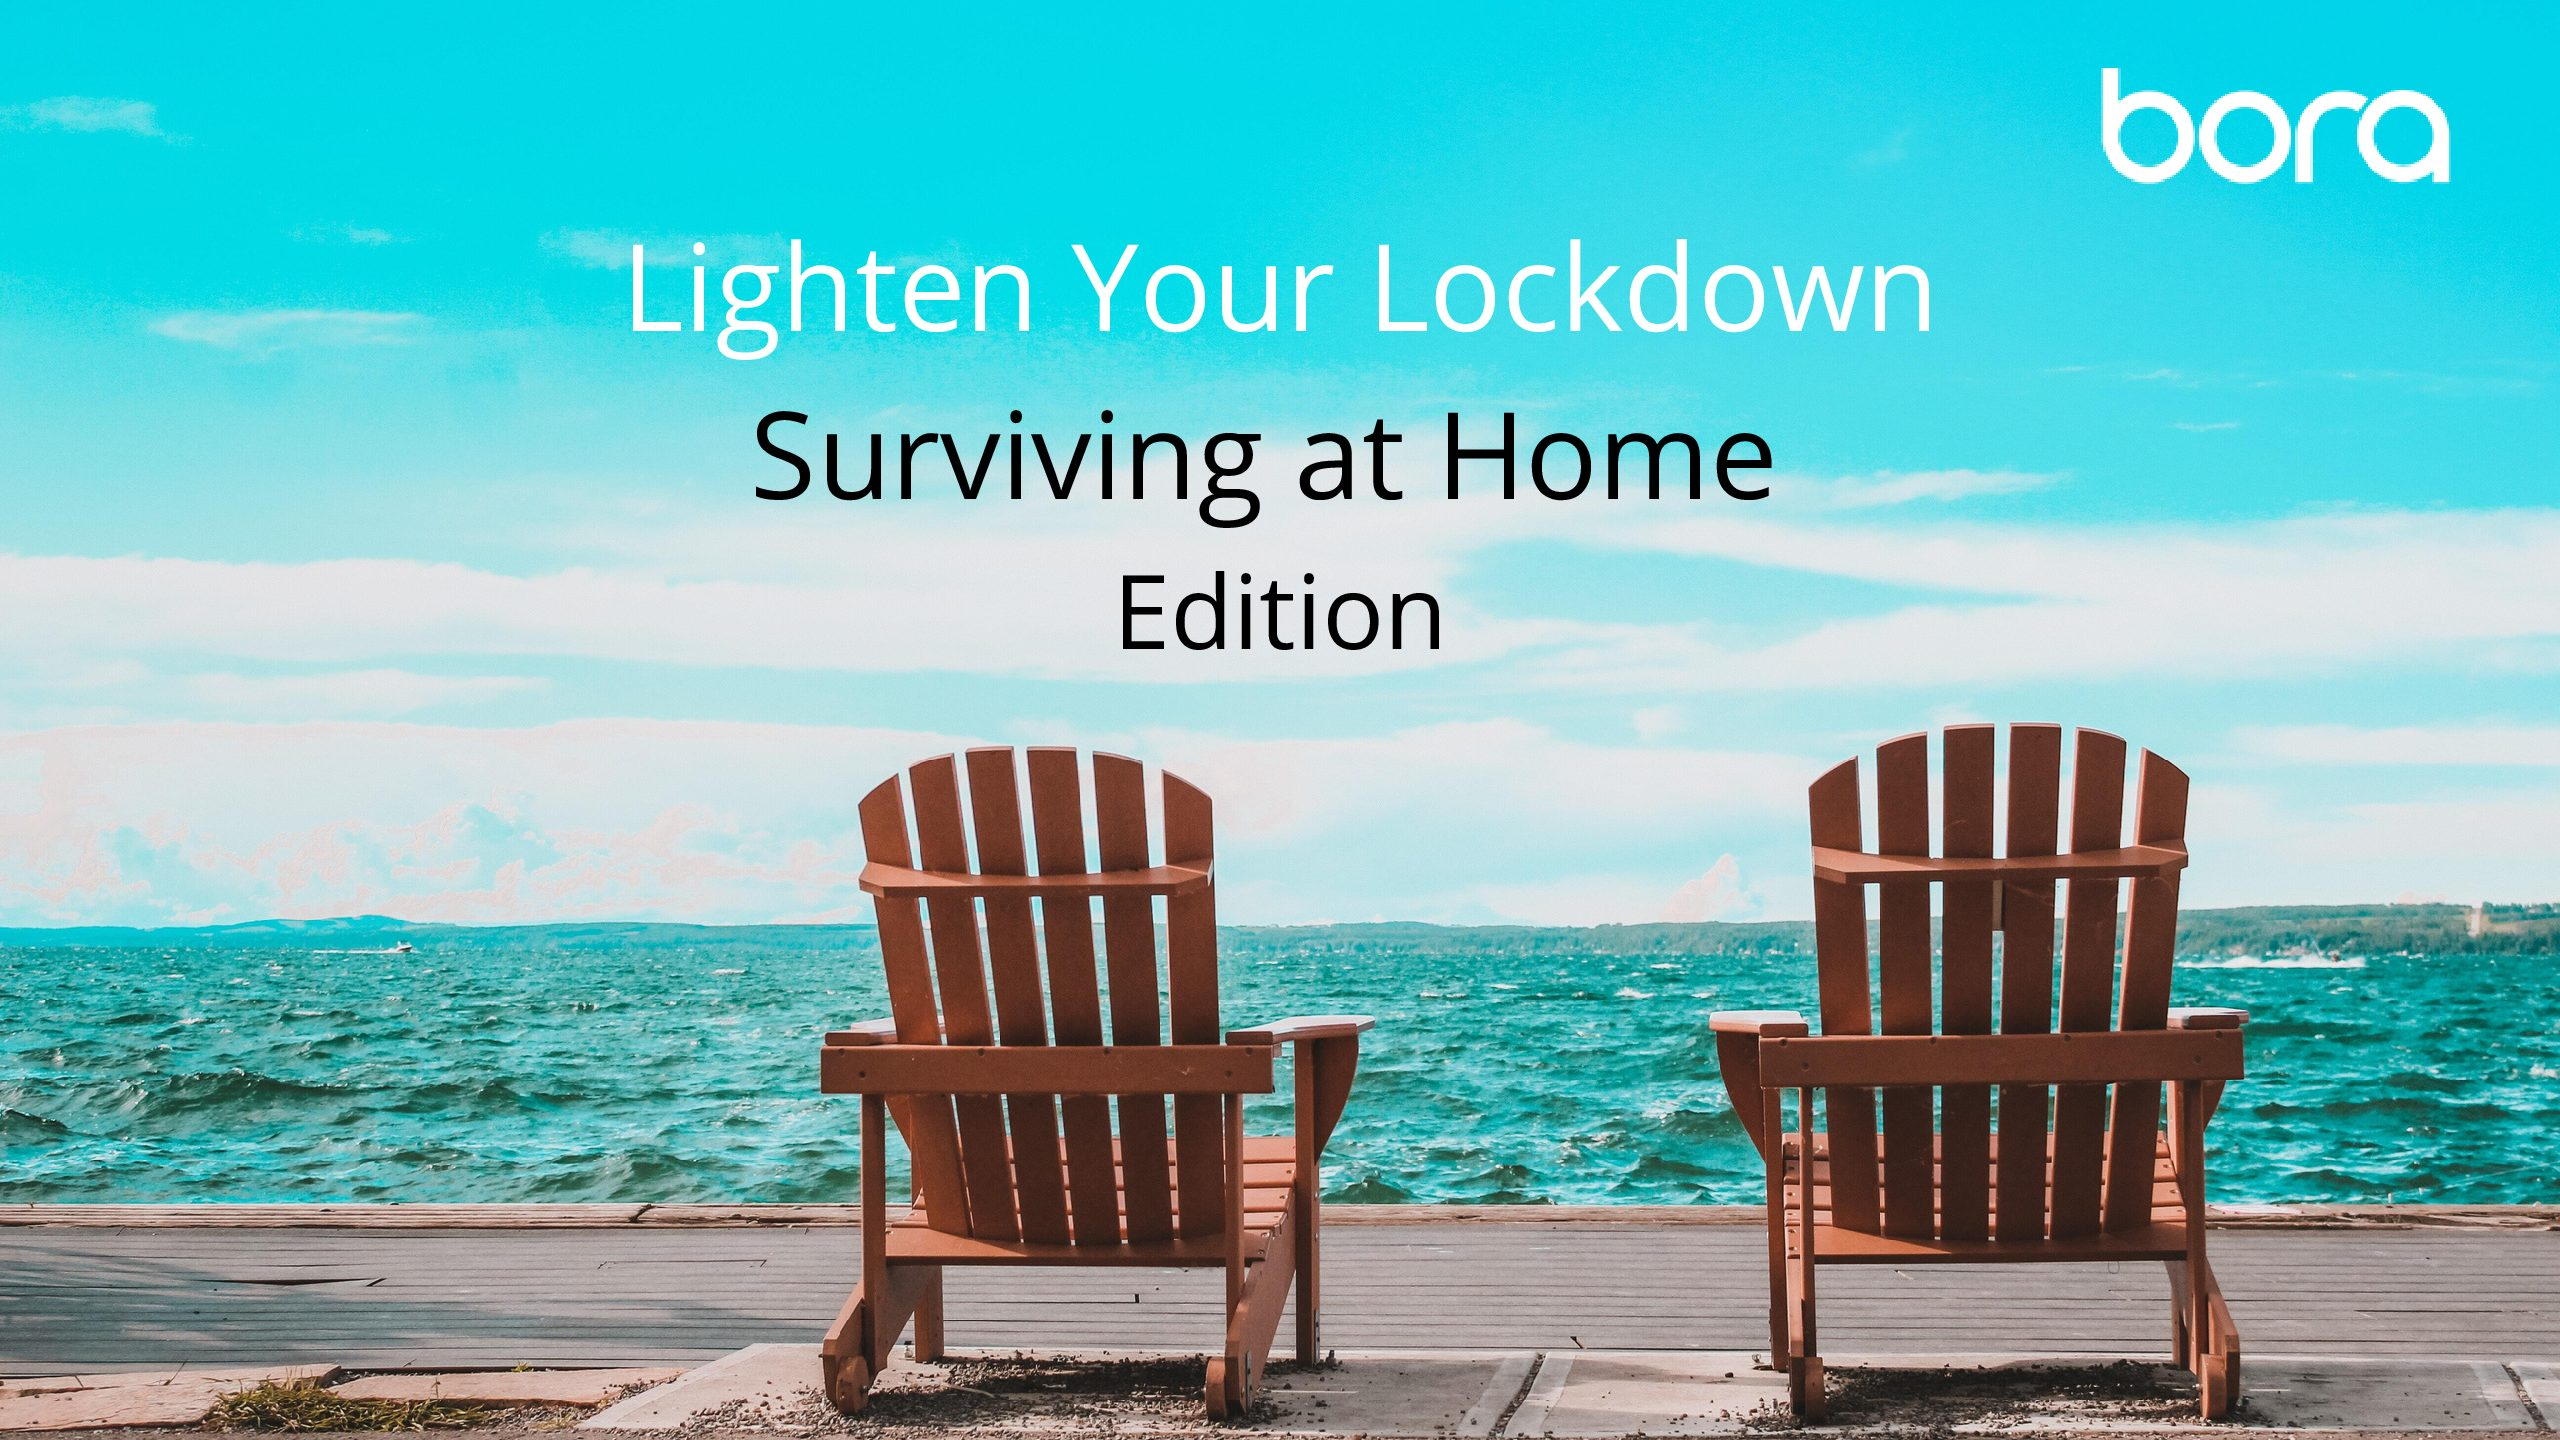 Lighten Your Lockdown: Surviving At Home Edition